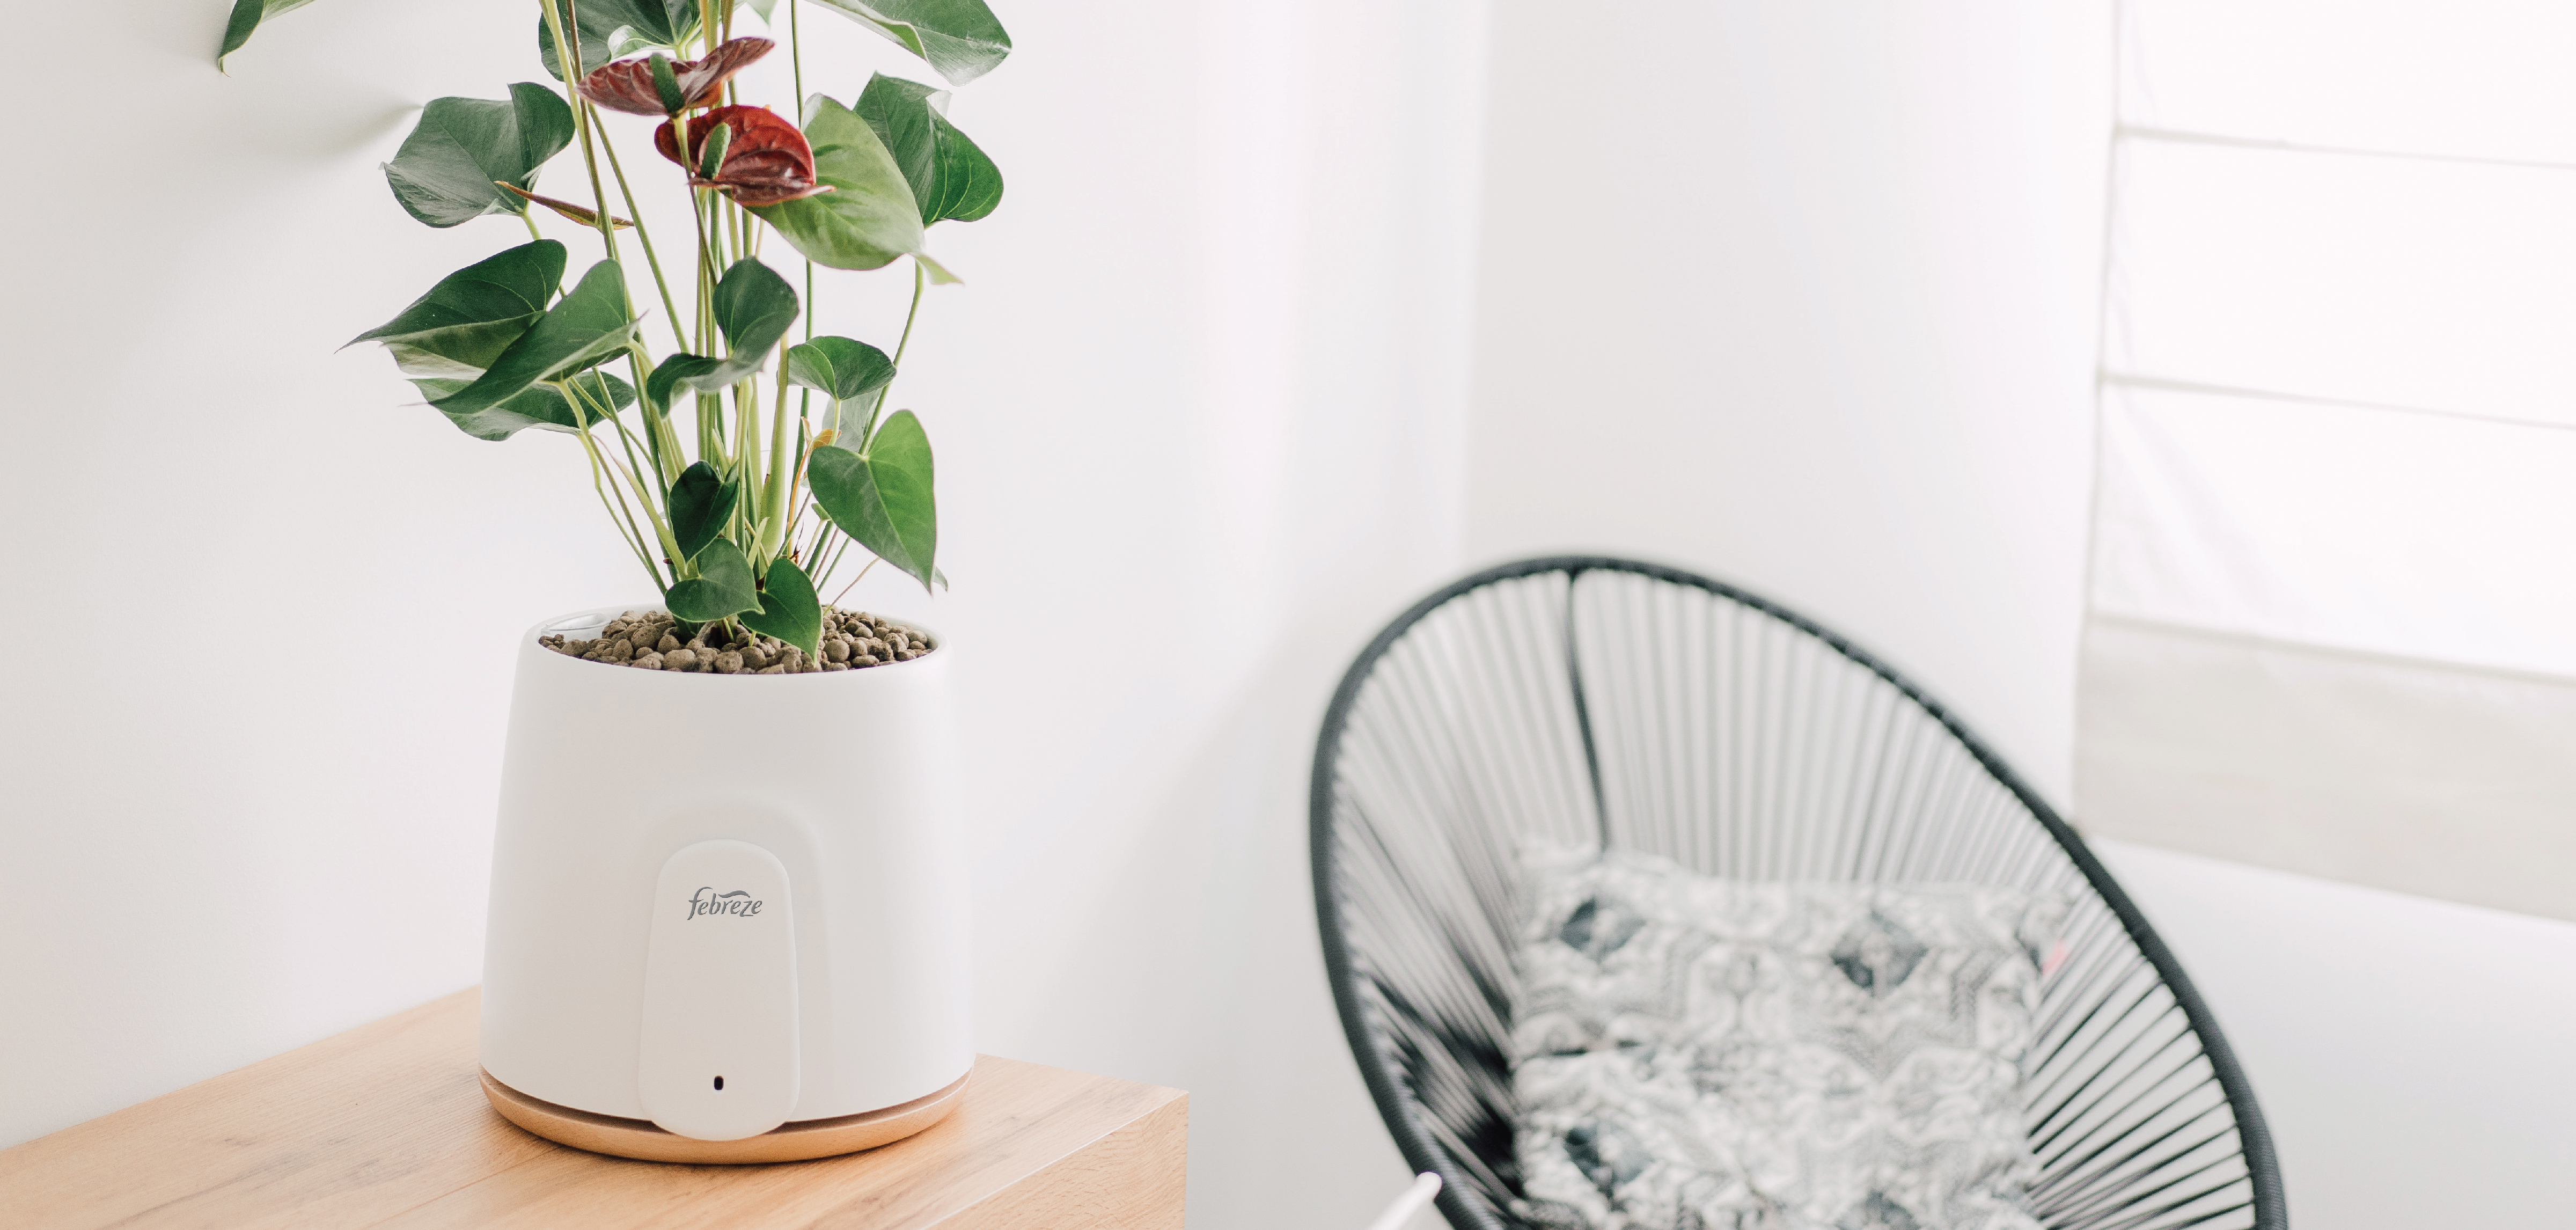 Febreze atural plant based air purifier in a room with a chair